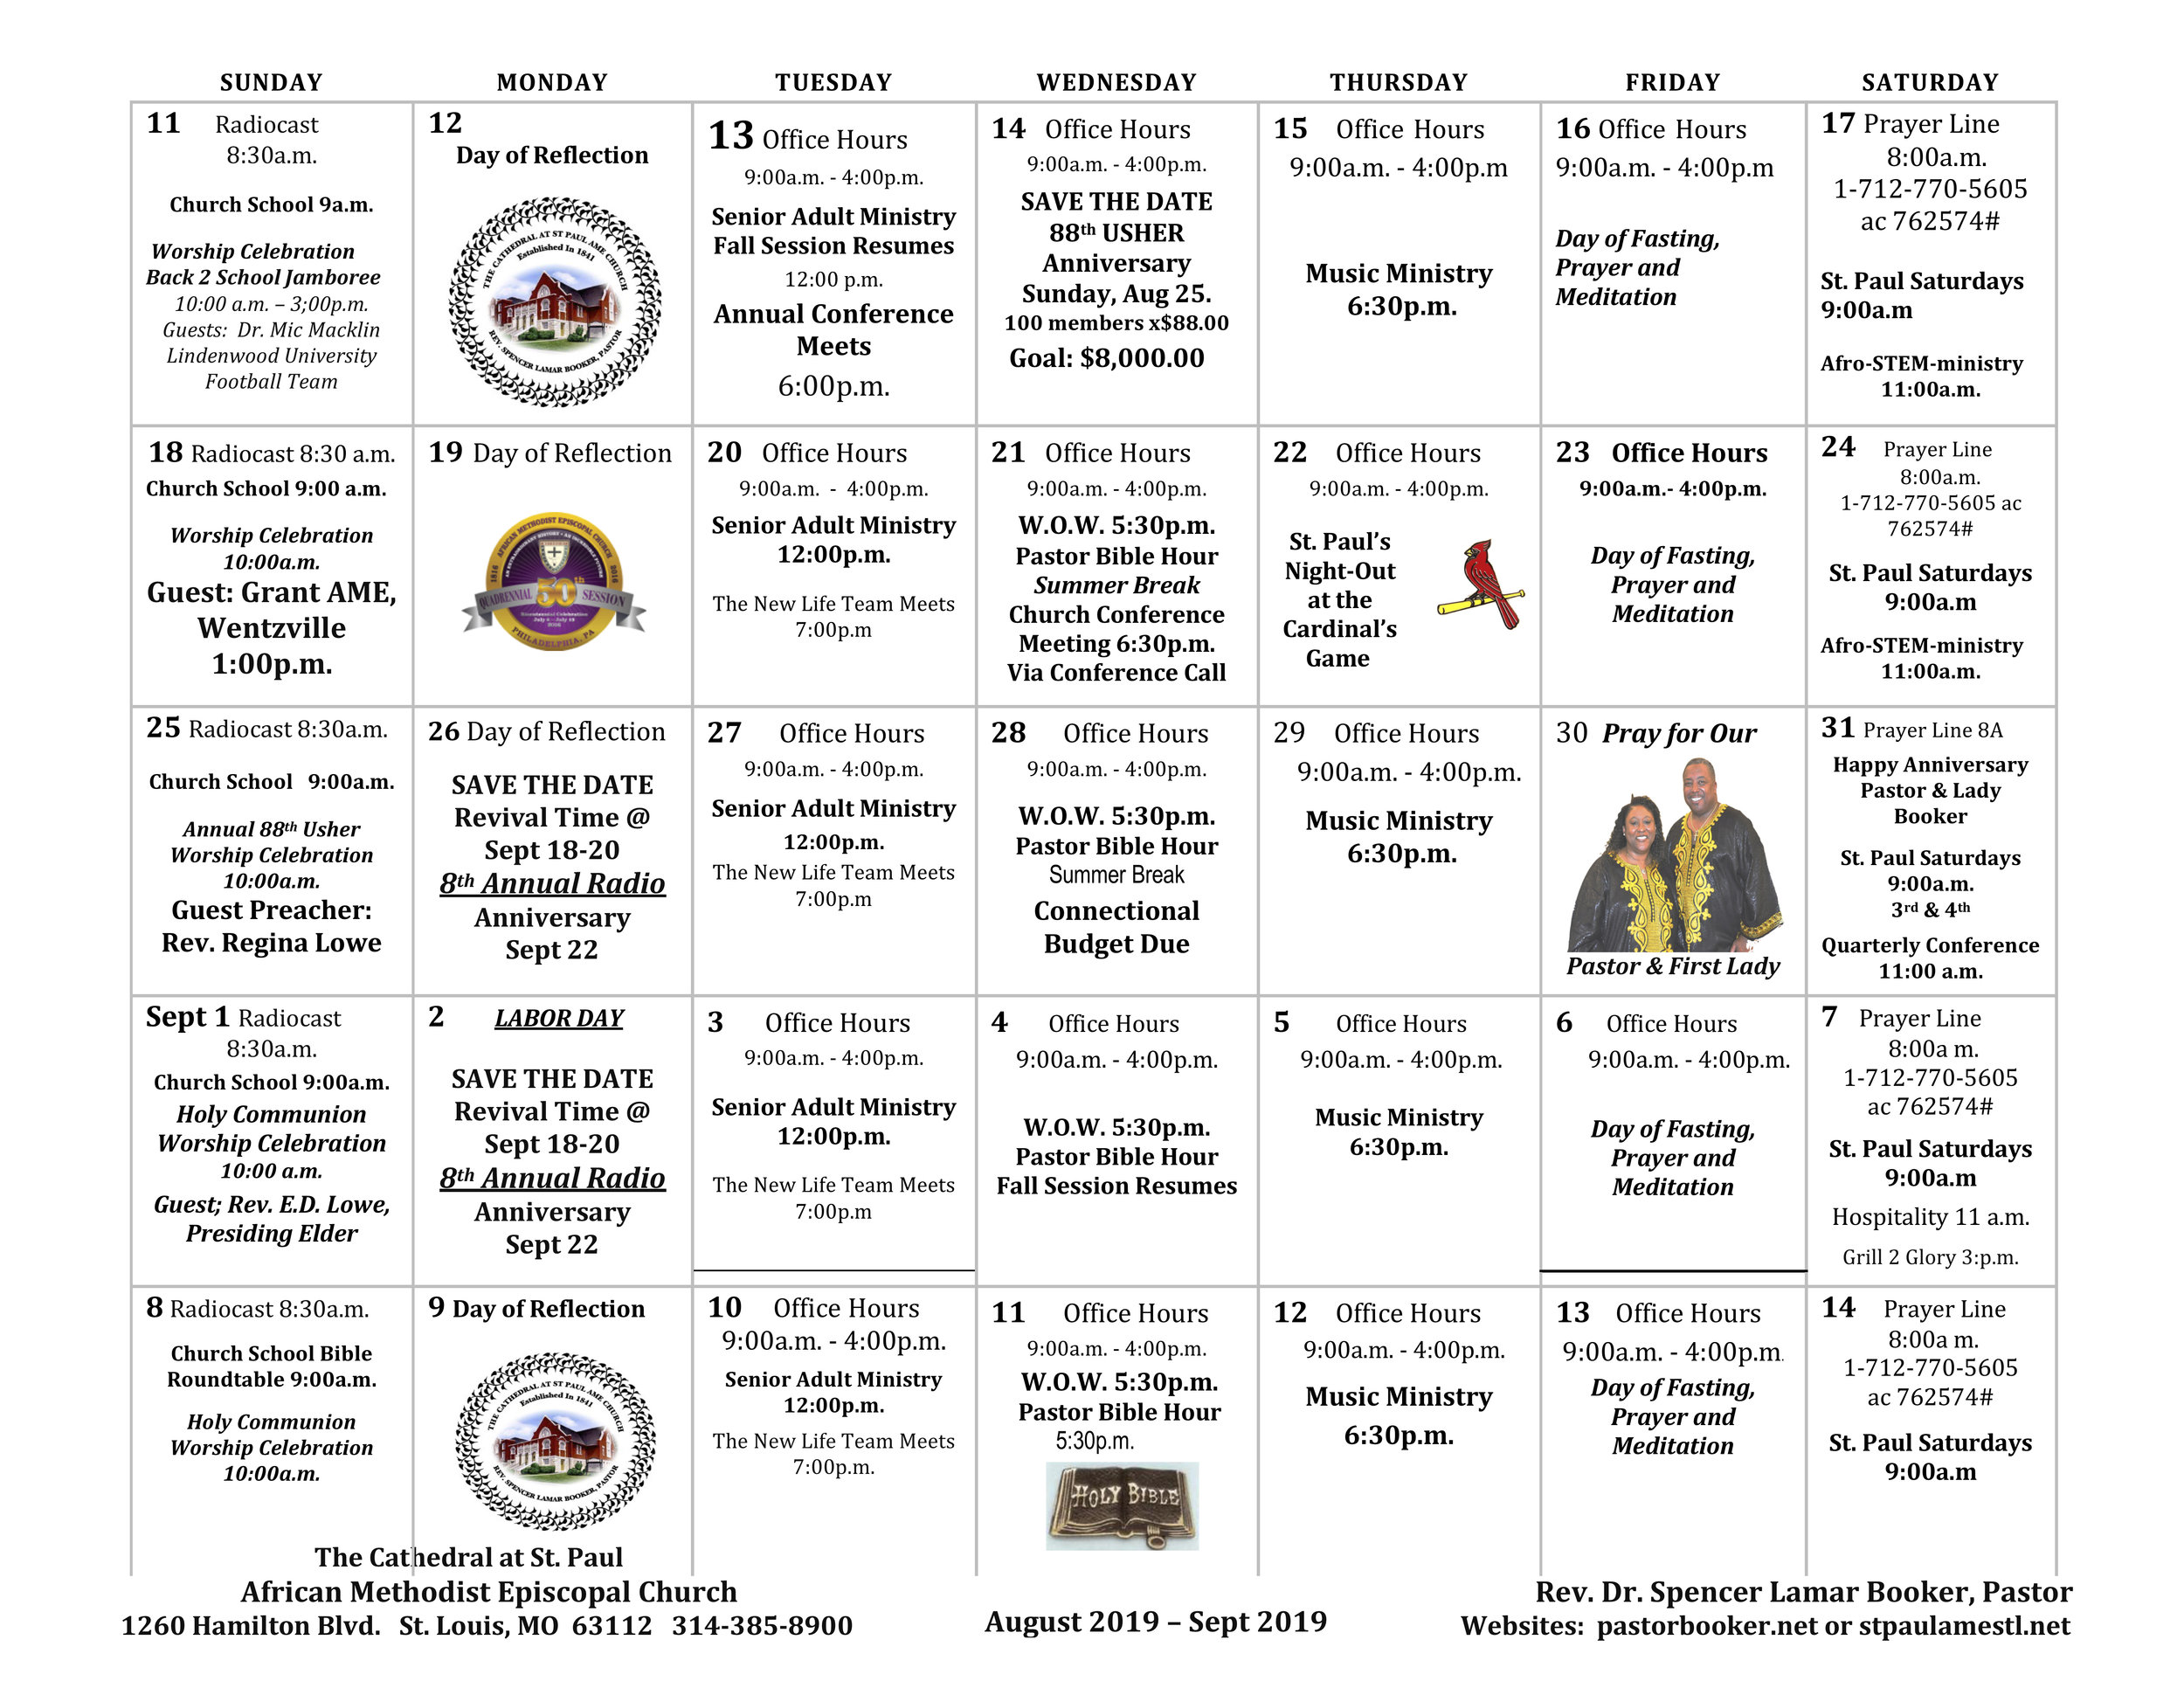 TheCathedral August 2019 Calendar.jpg